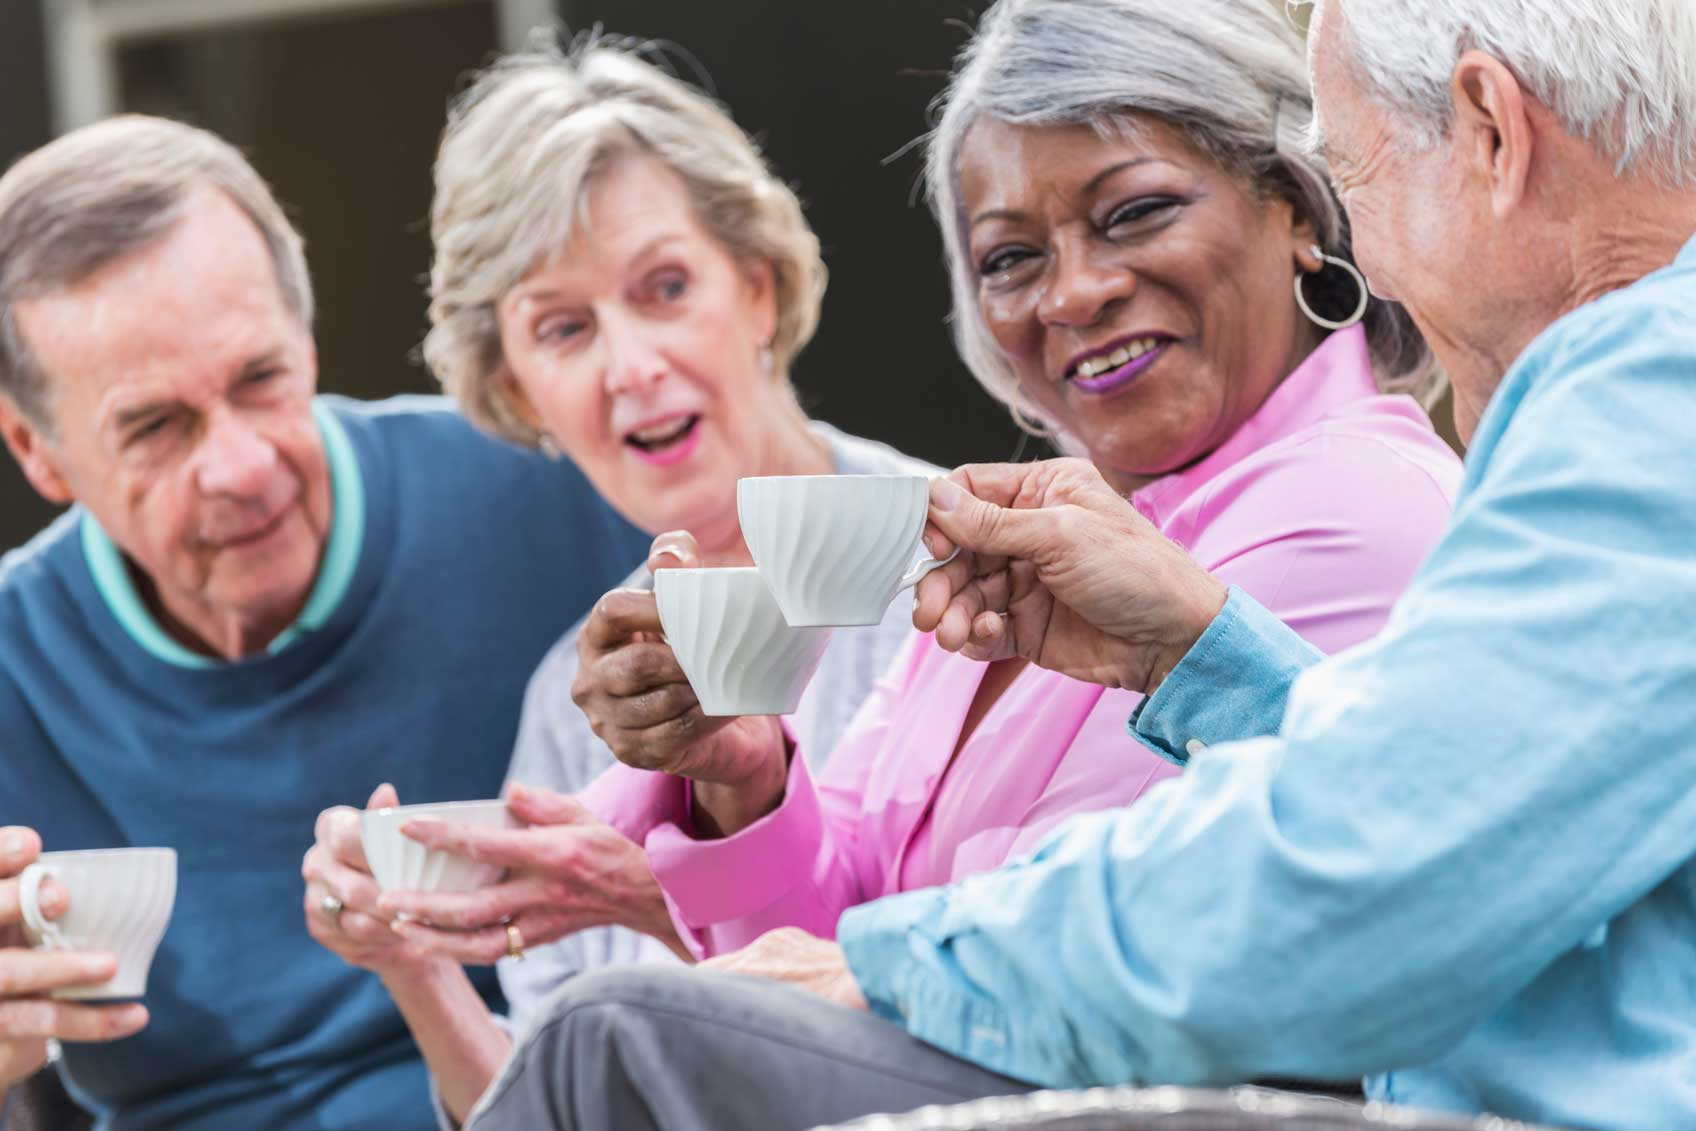 Differences persist between older blacks, whites in years lived without disability (iStock)